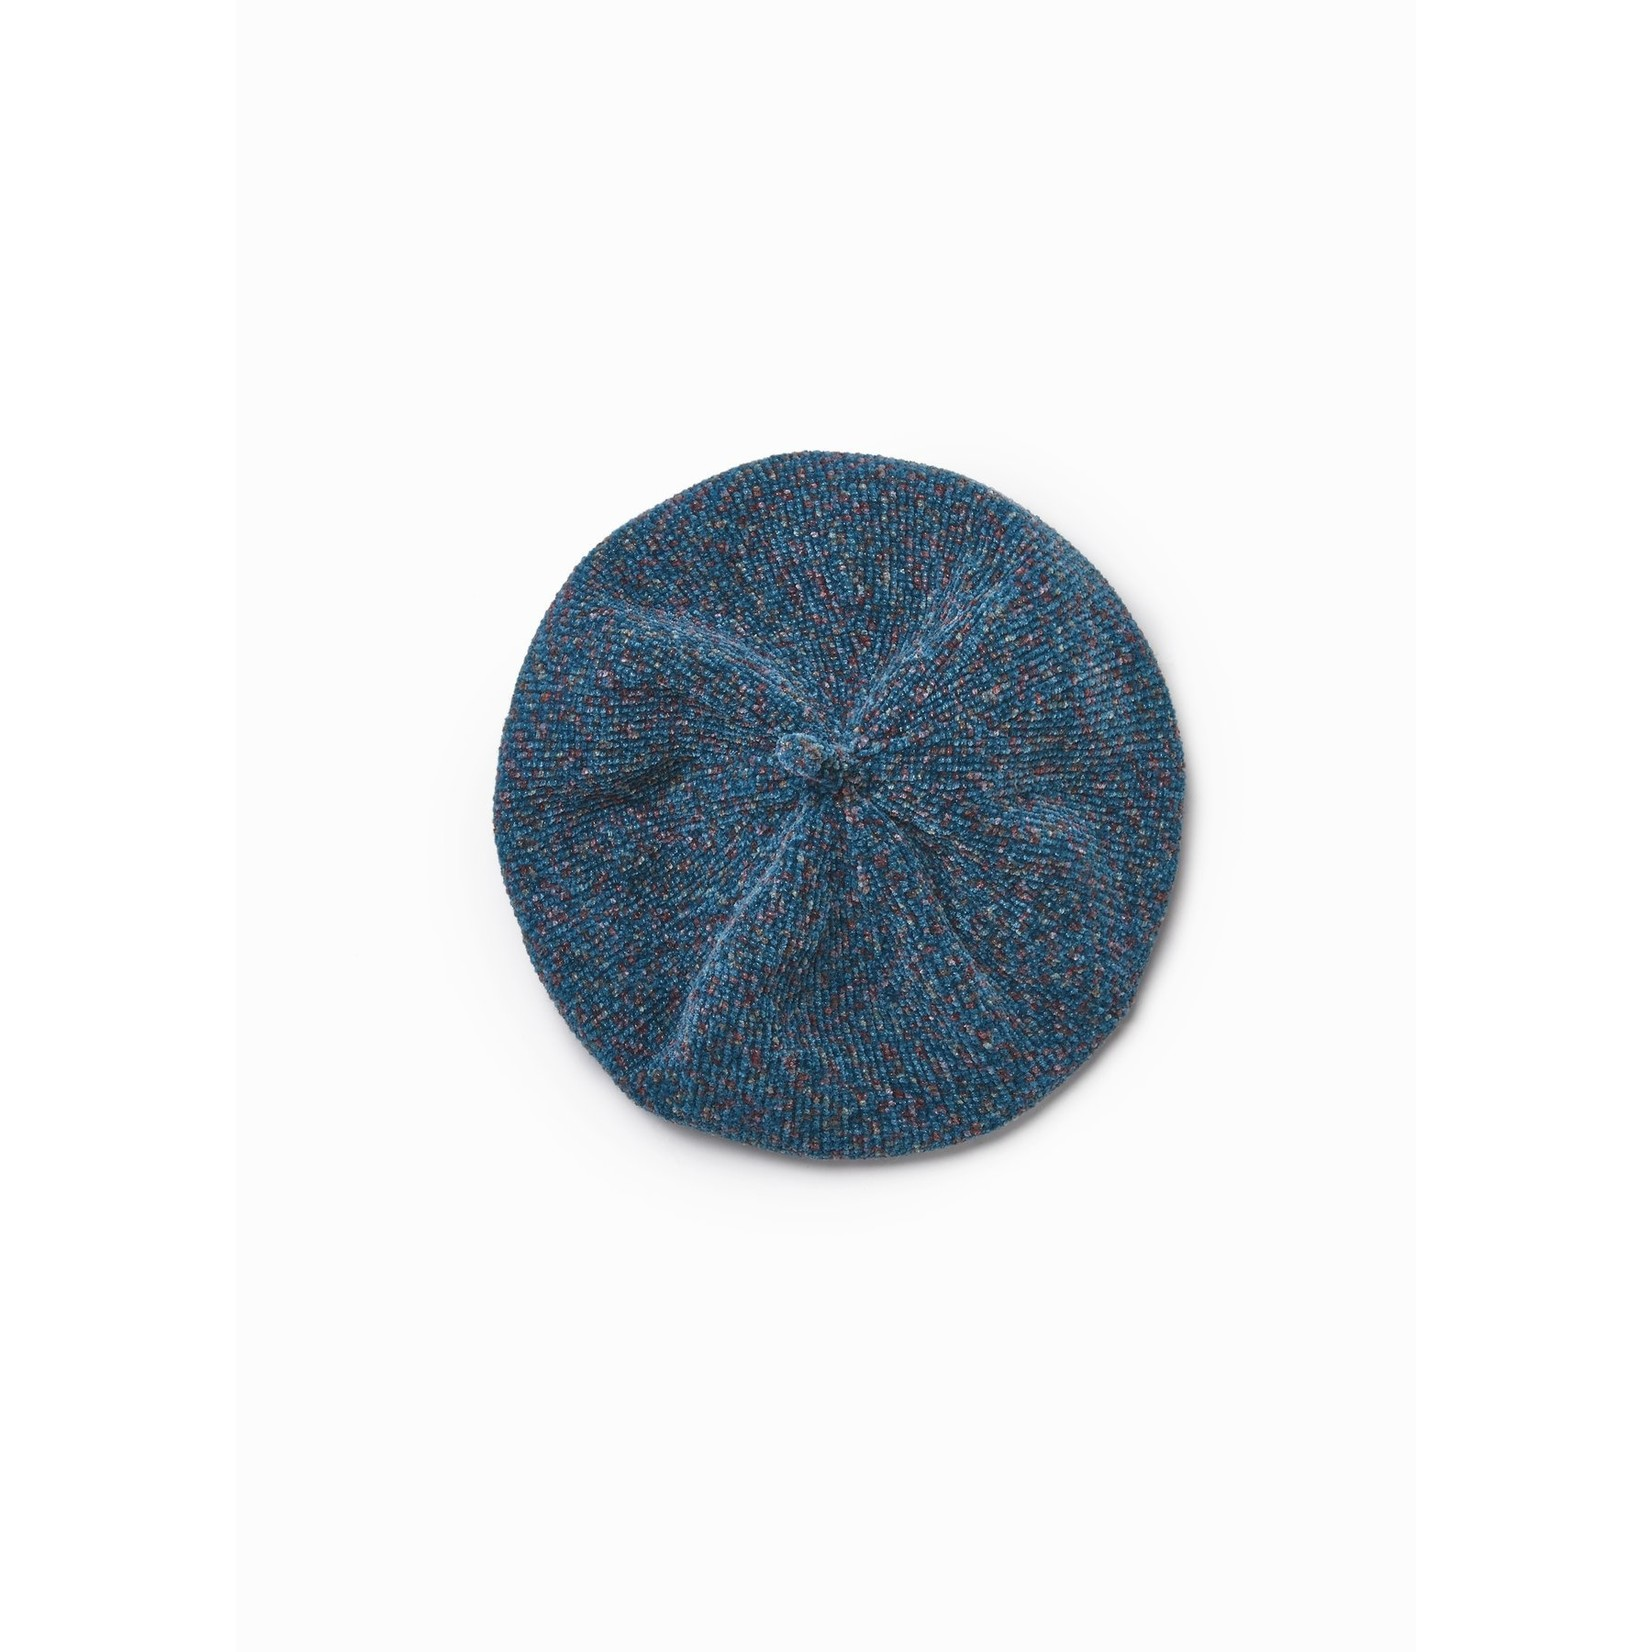 Multi-Color Chenille Beret in Teal